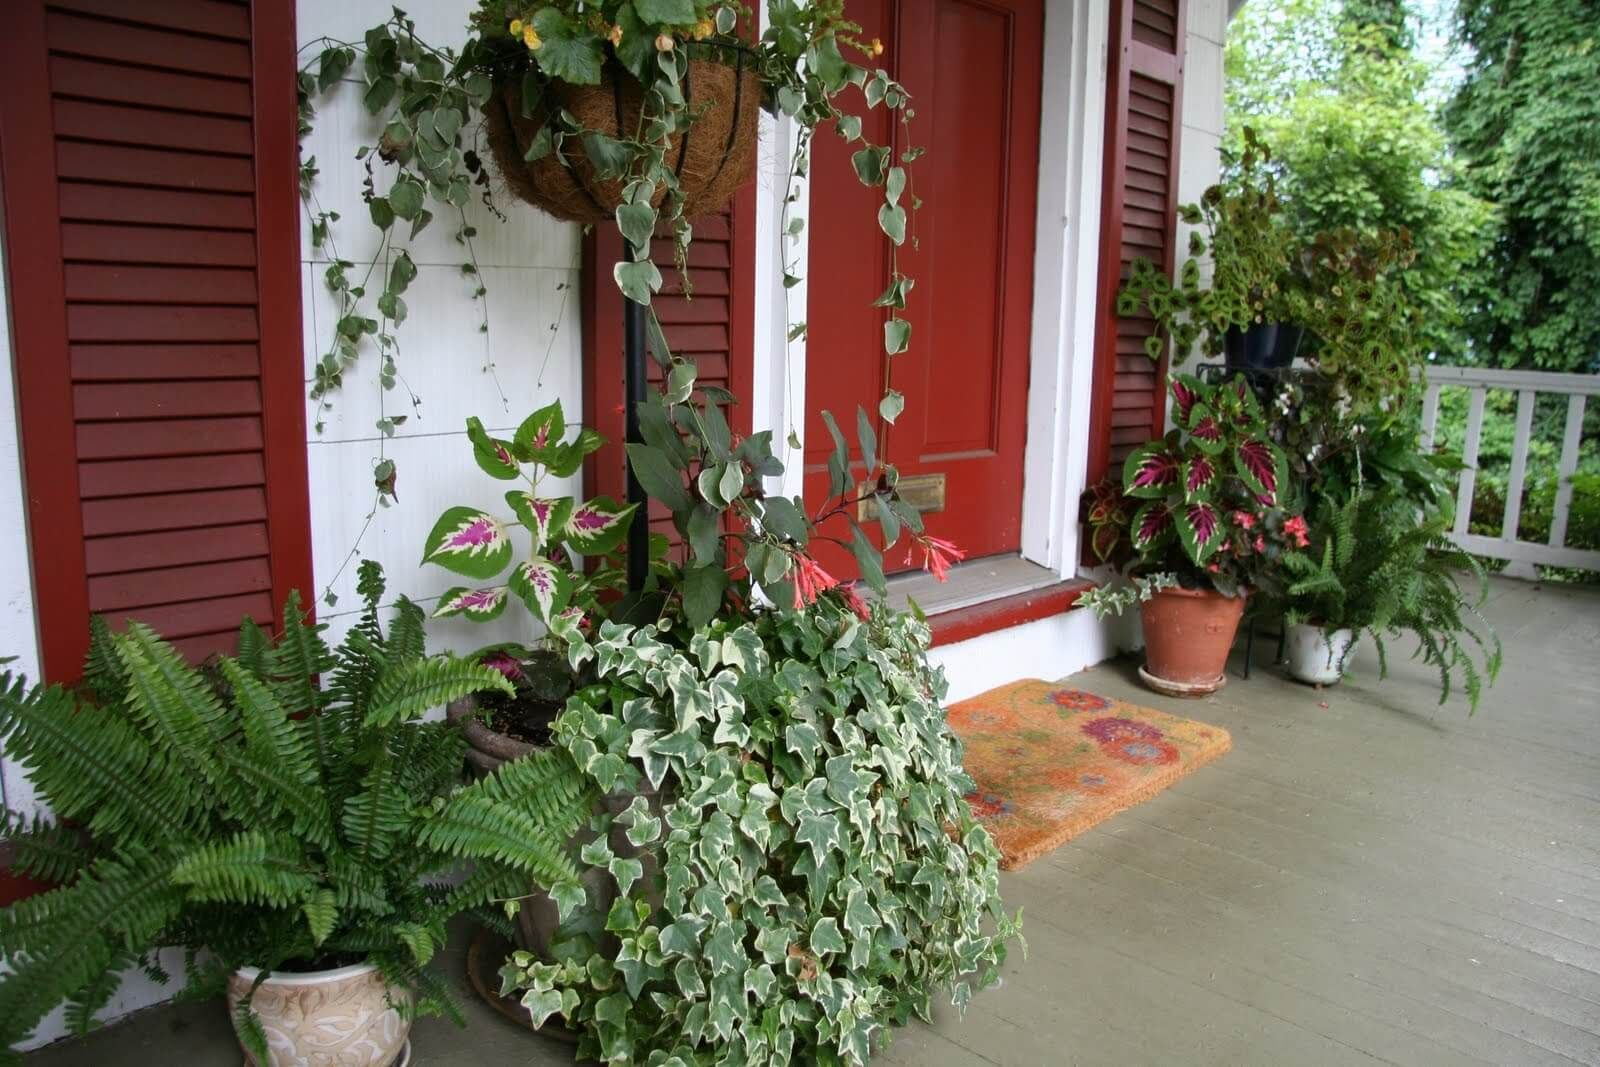 Potted plants front porch